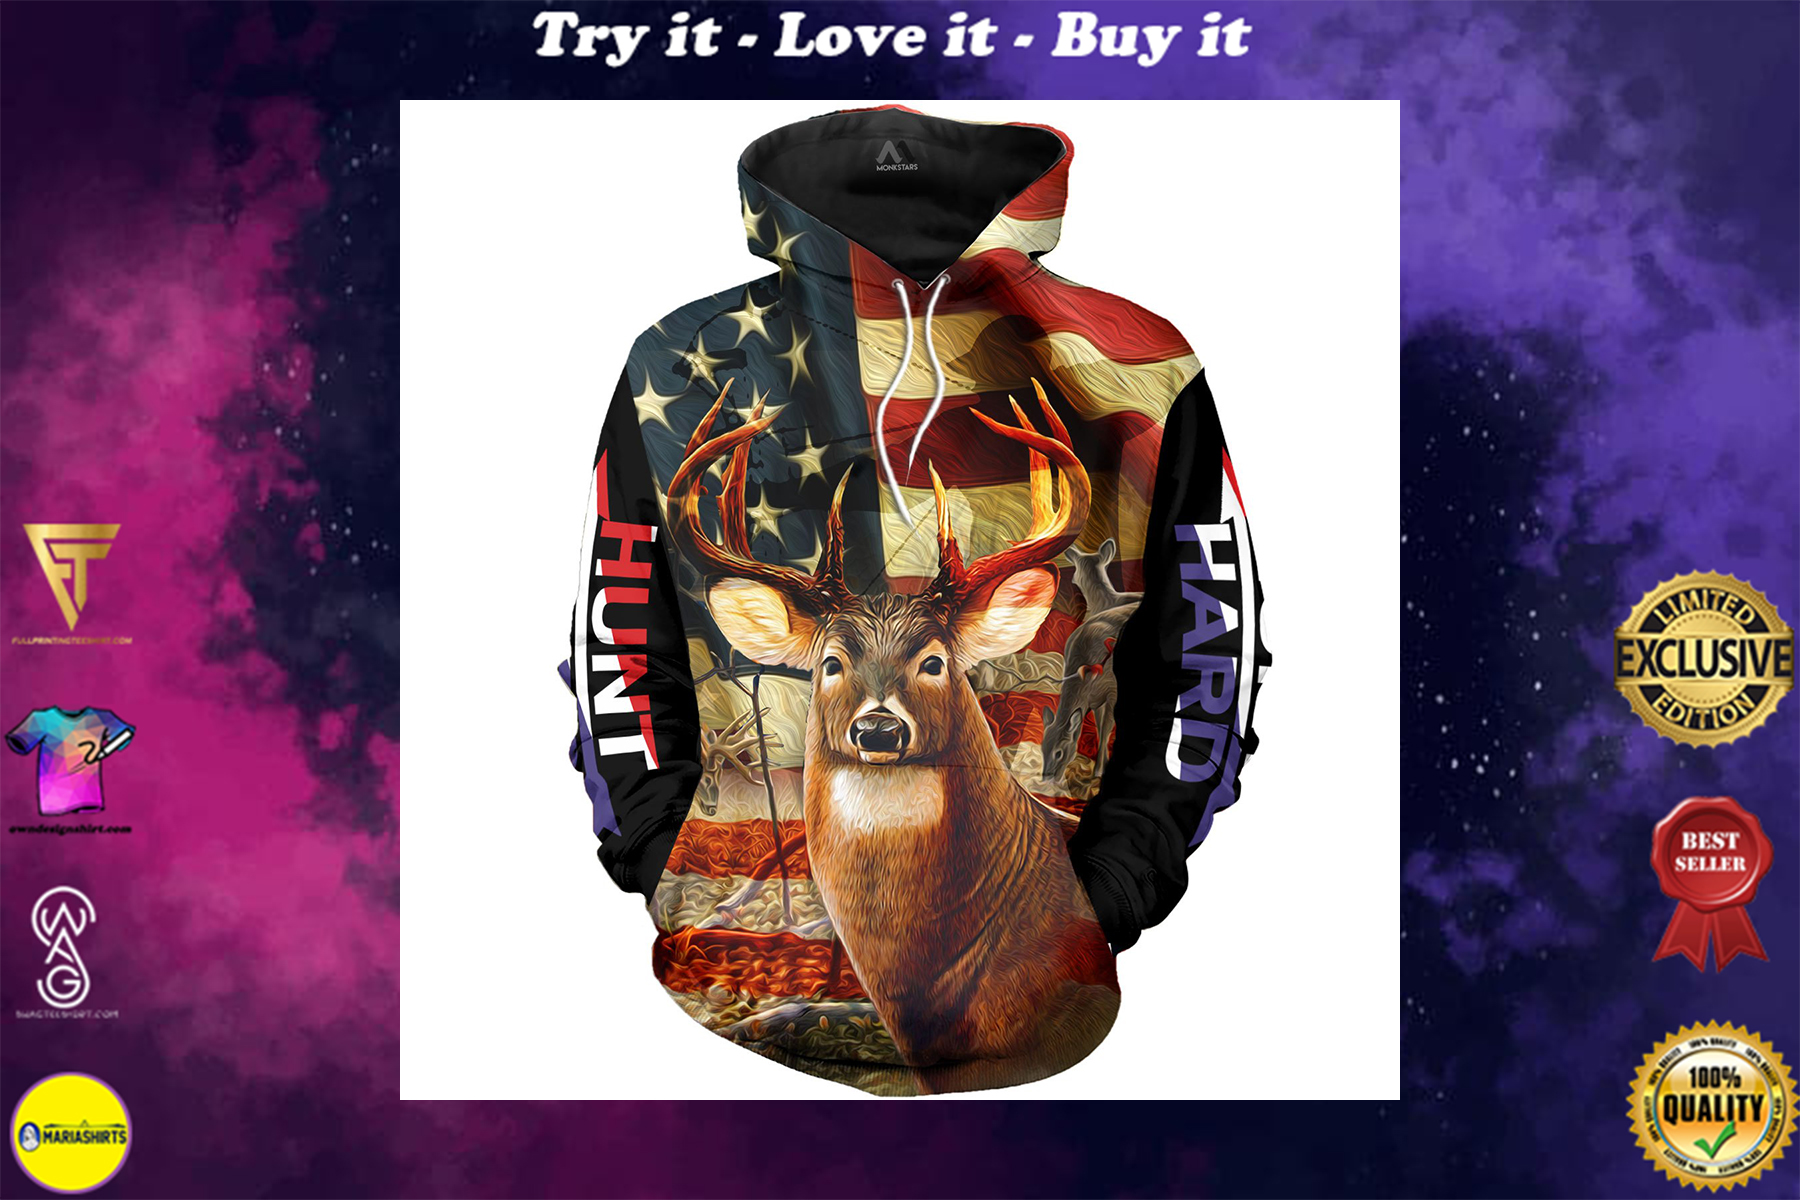 [special edition] american flag deer hunting love hunter full over printed shirt - maria